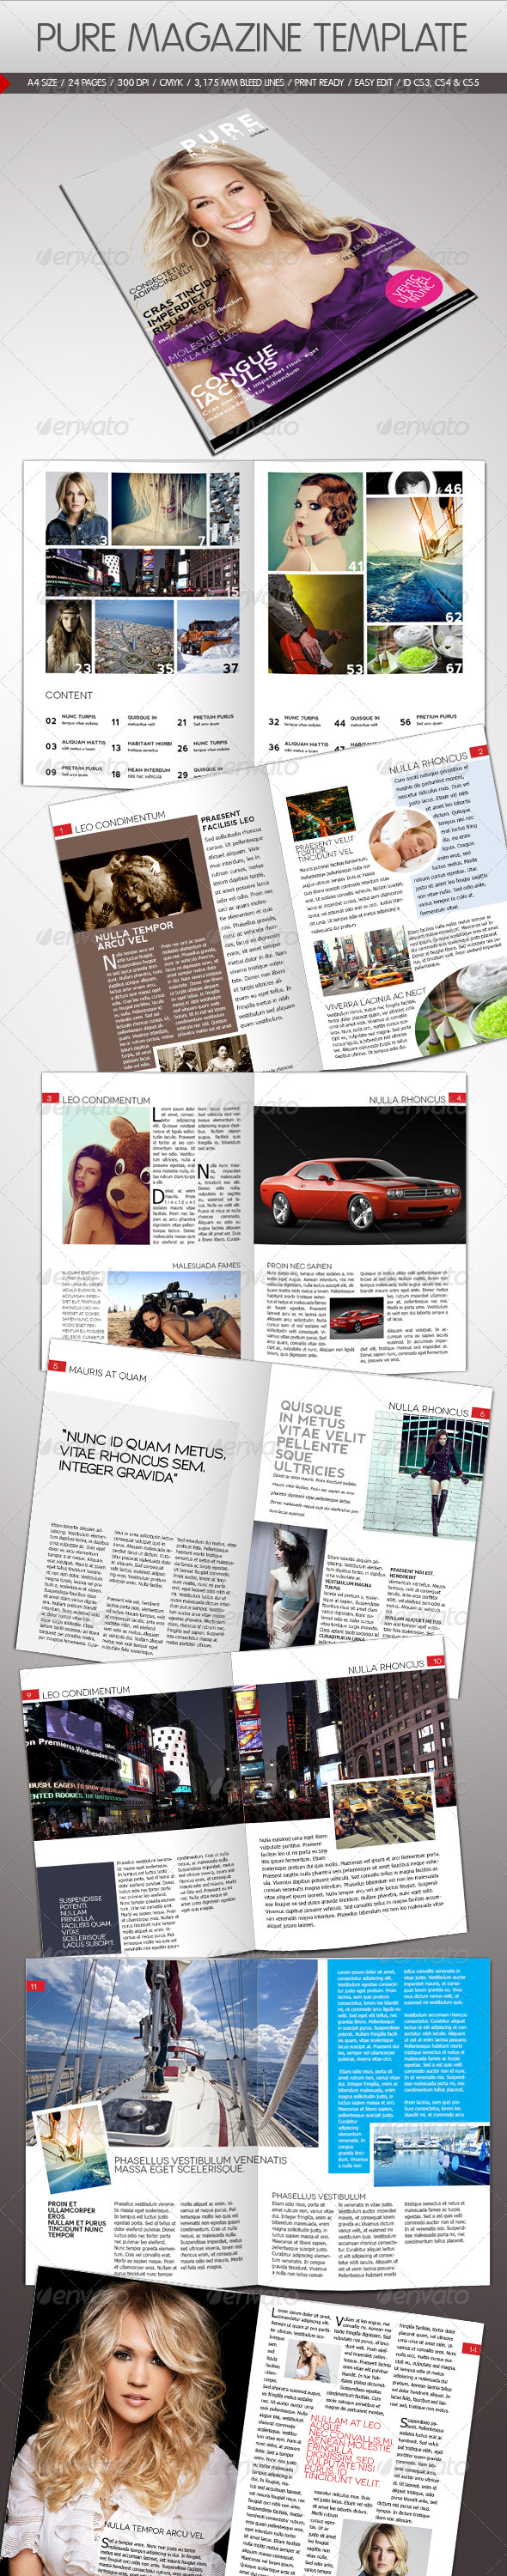 Pure Magazine Template - Magazines Print Templates